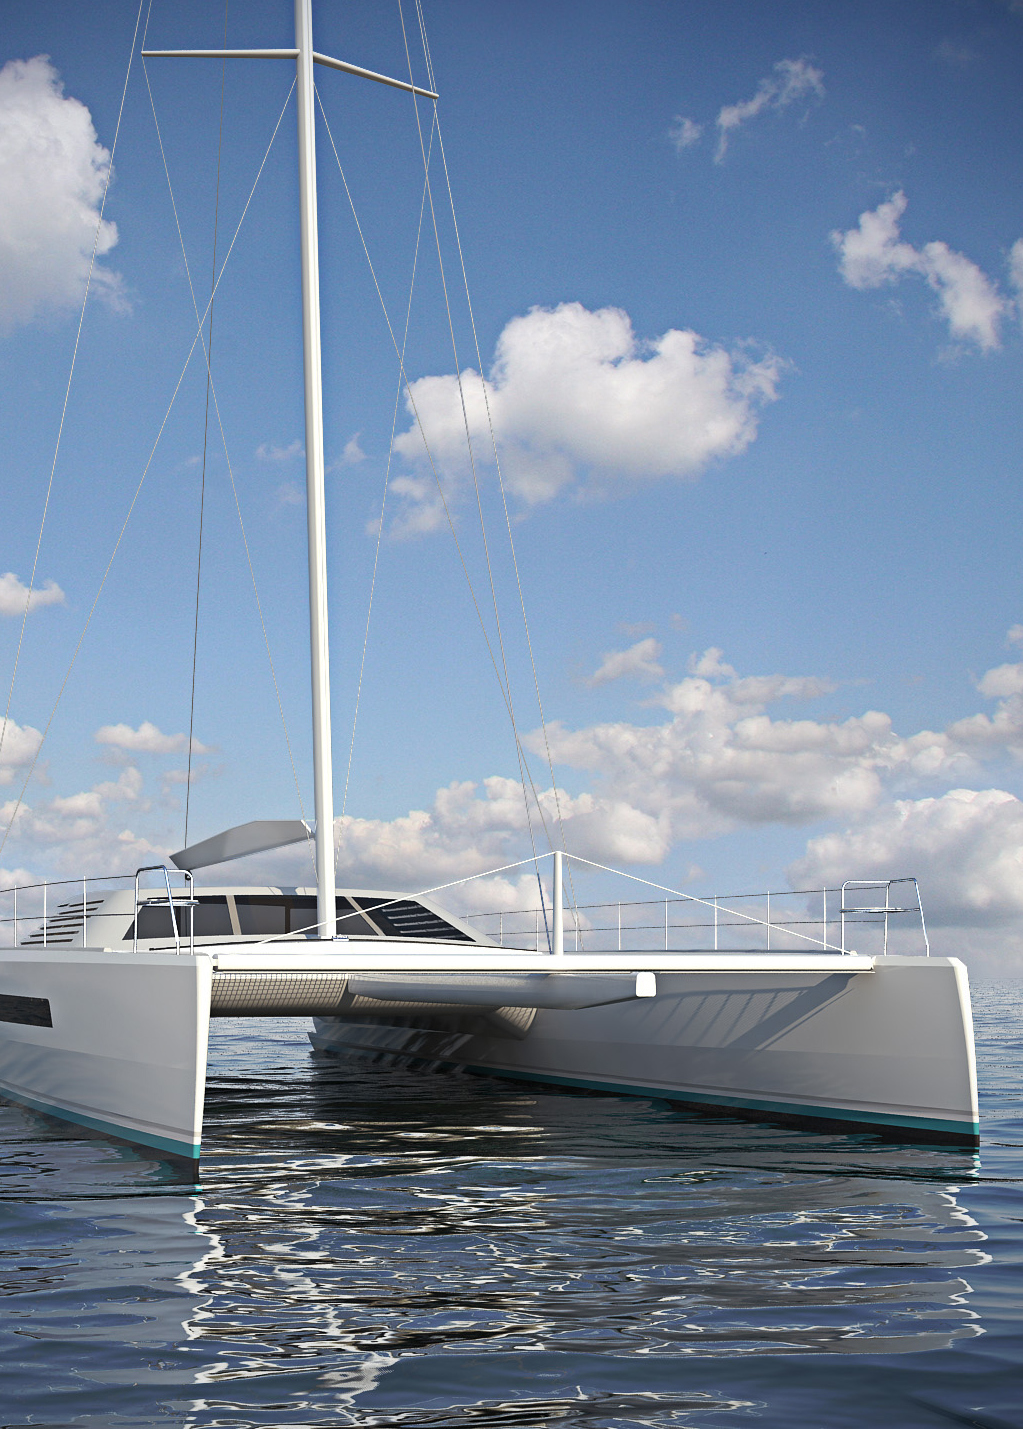 bow-view-of-the-open-ocean-82hpc-sailing-yacht